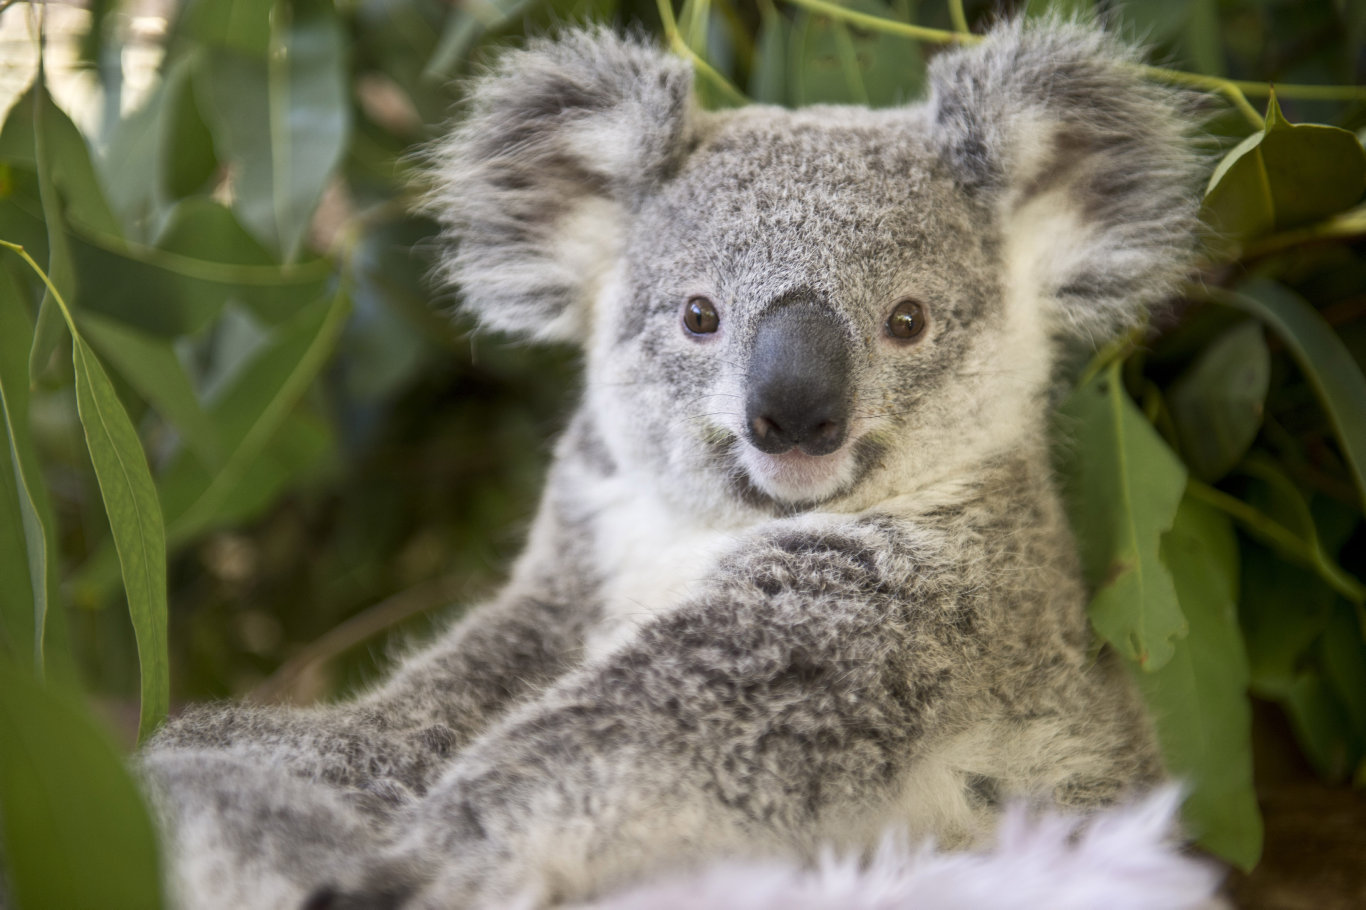 Approximately 85 per cent of the koala habitat in the Groom electorate is destroyed.